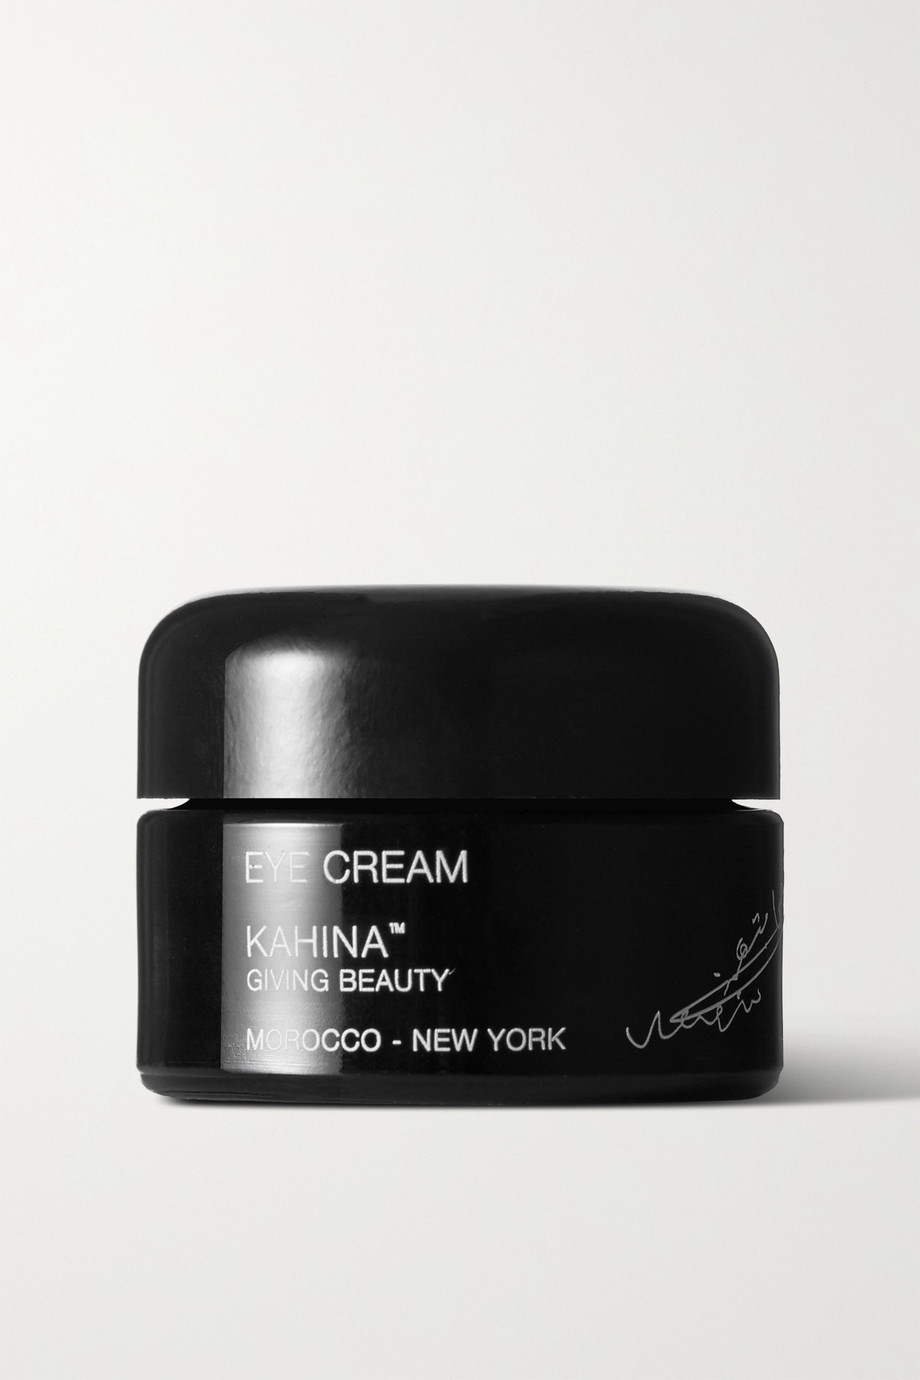 Kahina Giving Beauty + NET SUSTAIN Eye Cream, 12ml